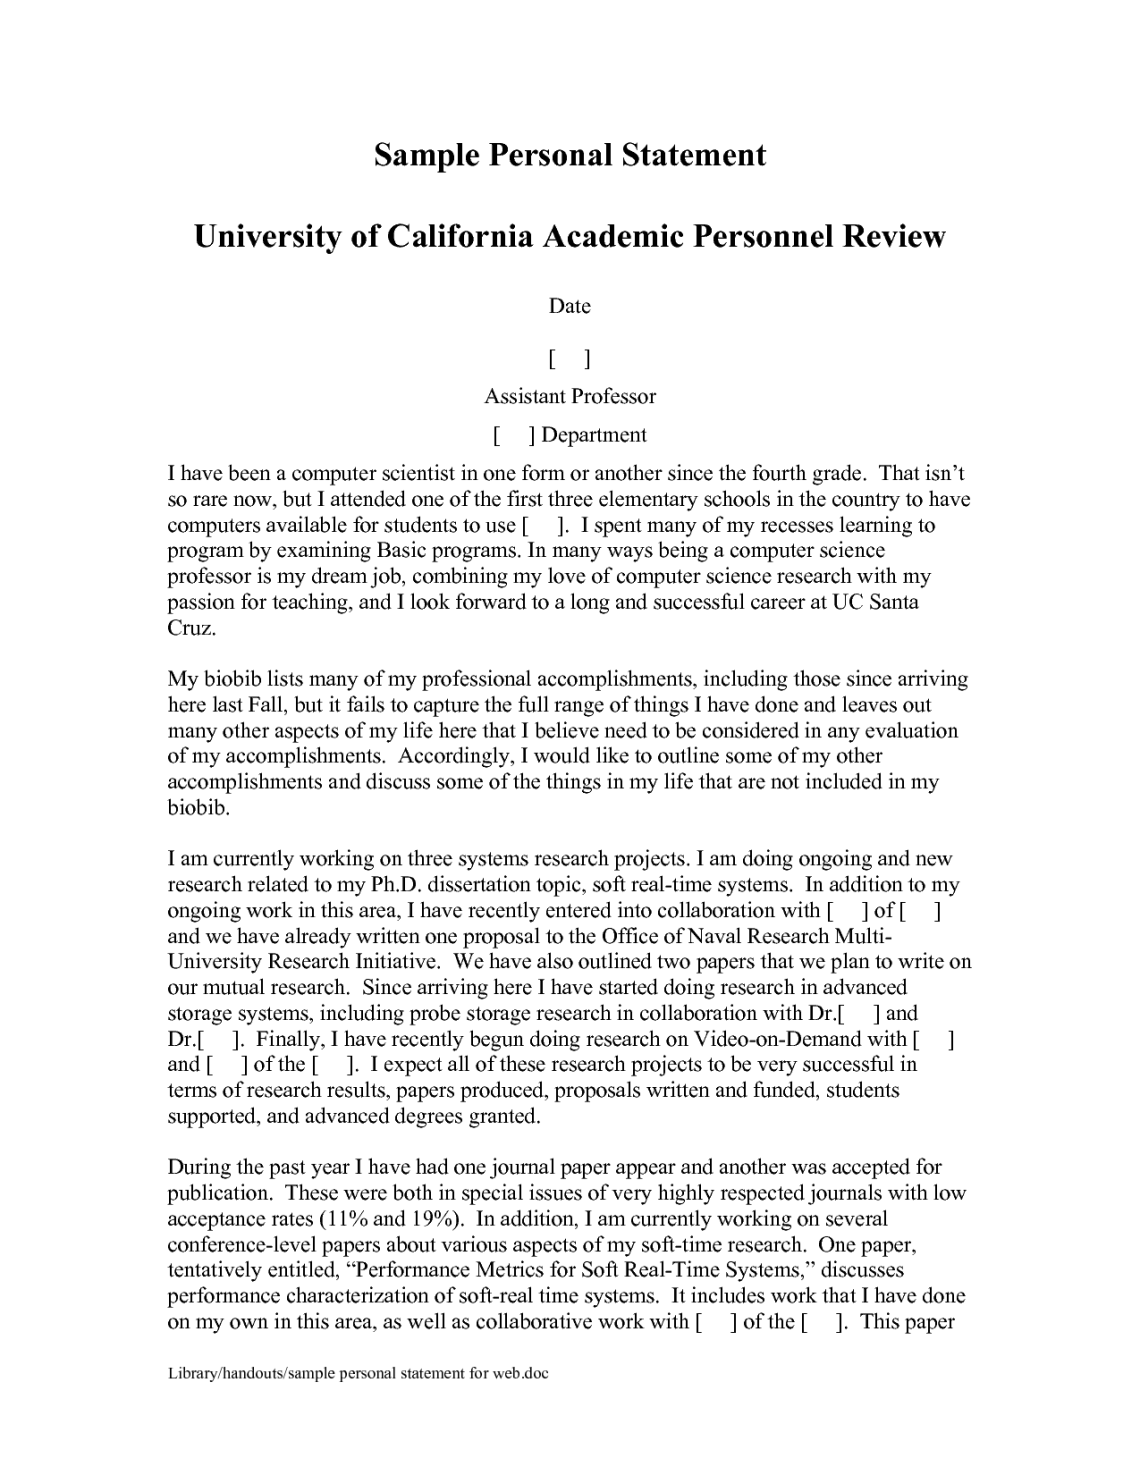 Creating A Top-Quality Term Paper Proposal Easily